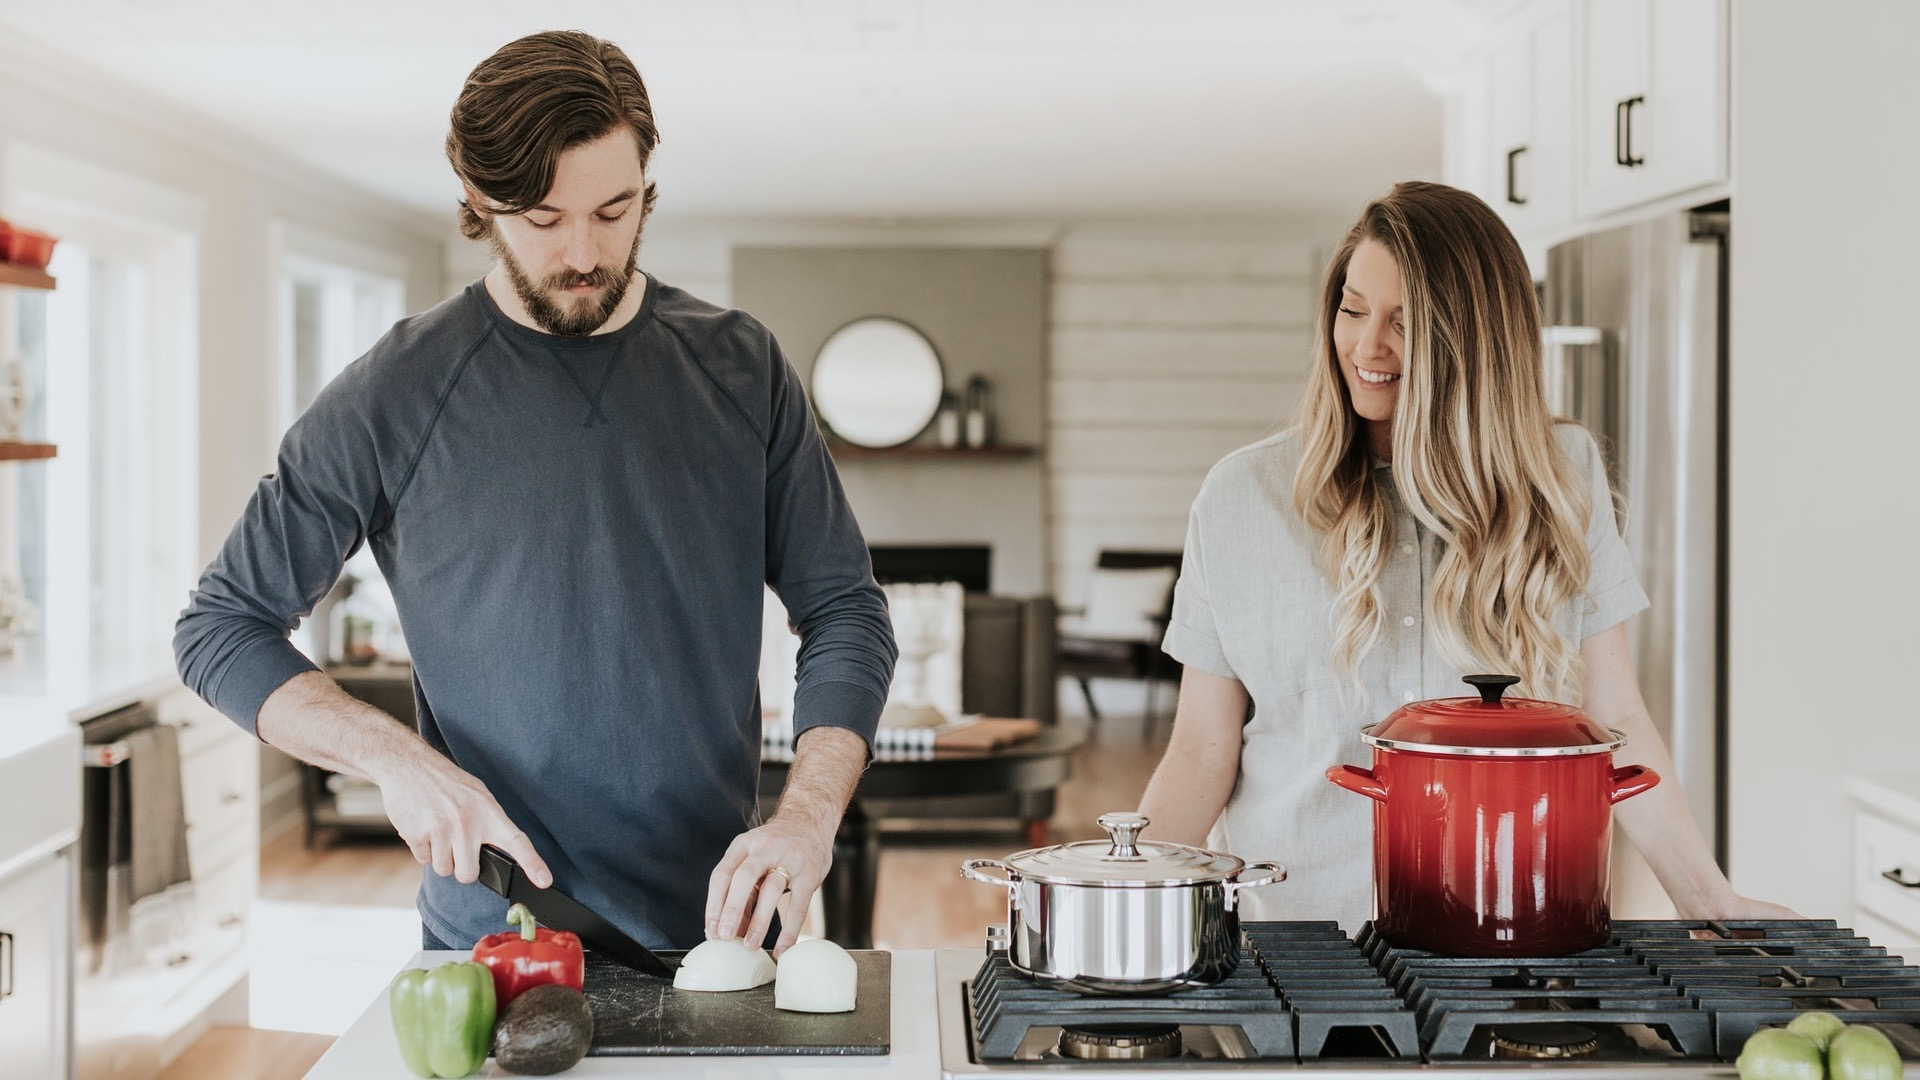 man-cooking-with-woman